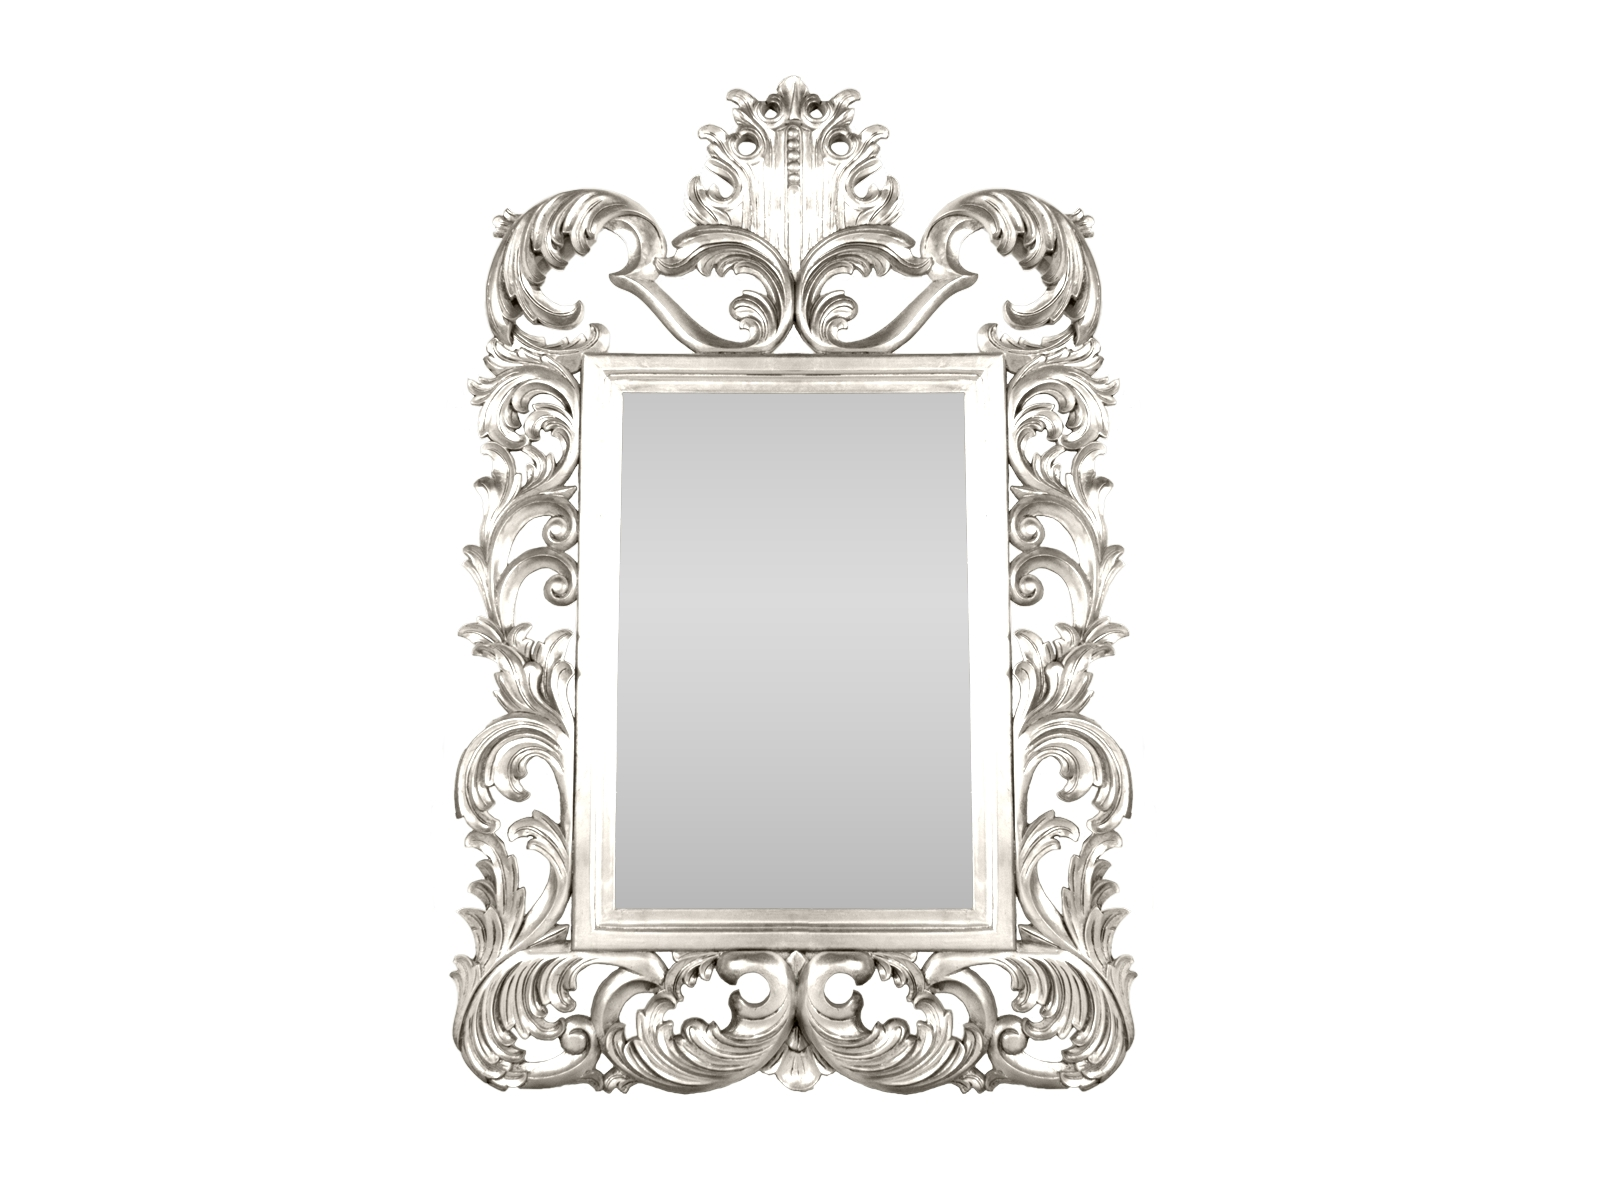 Silver Rococo Mirror Hidden Mill Throughout Large White Rococo Mirror (Image 12 of 15)